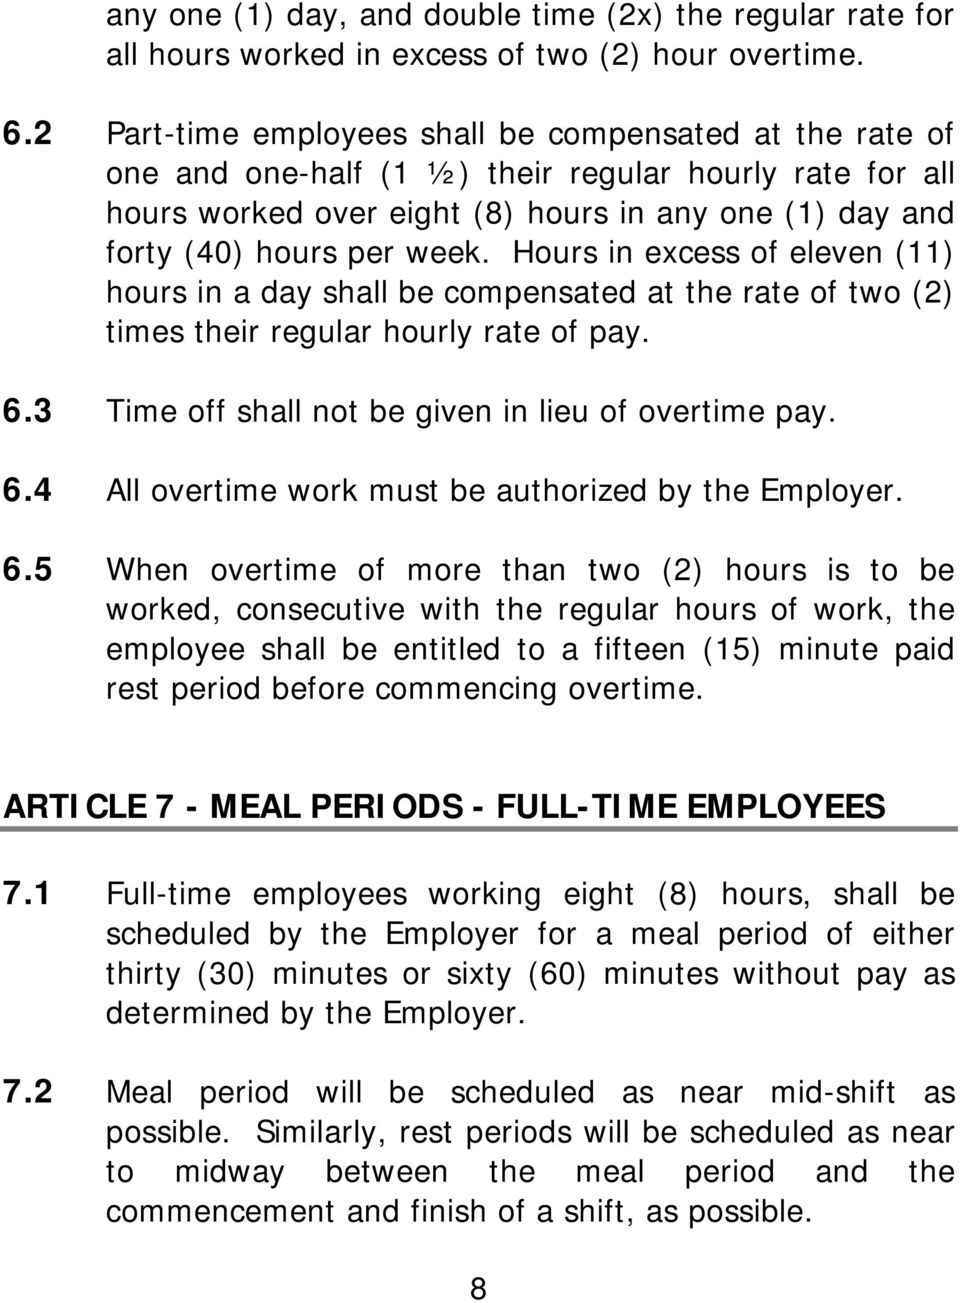 Hours in excess of eleven (11) hours in a day shall be compensated at the rate of two (2) times their regular hourly rate of pay. 6.3 Time off shall not be given in lieu of overtime pay. 6.4 All overtime work must be authorized by the Employer.